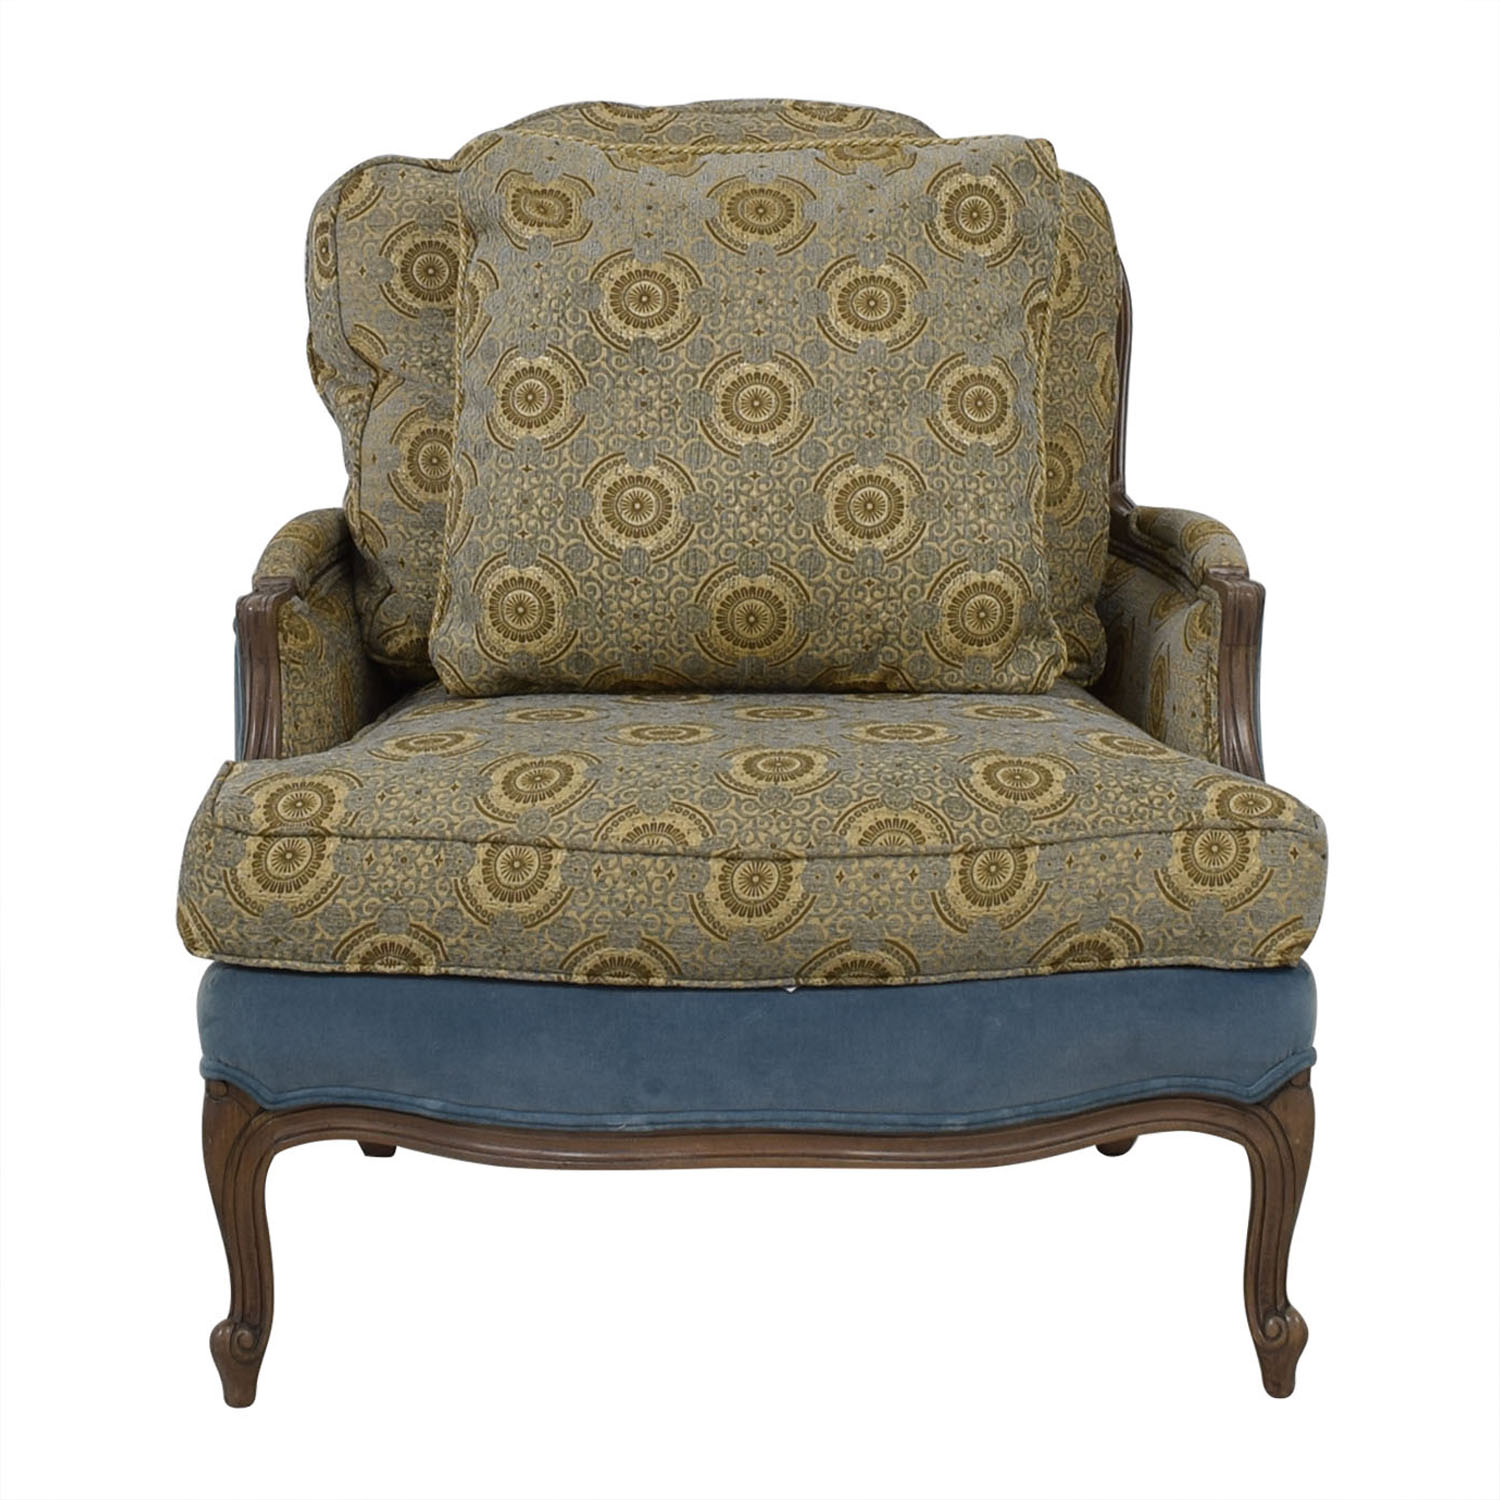 Ethan Allen Club Chairs 83 Off Ethan Allen Ethan Allen Blue And Beige Accent Chair Chairs